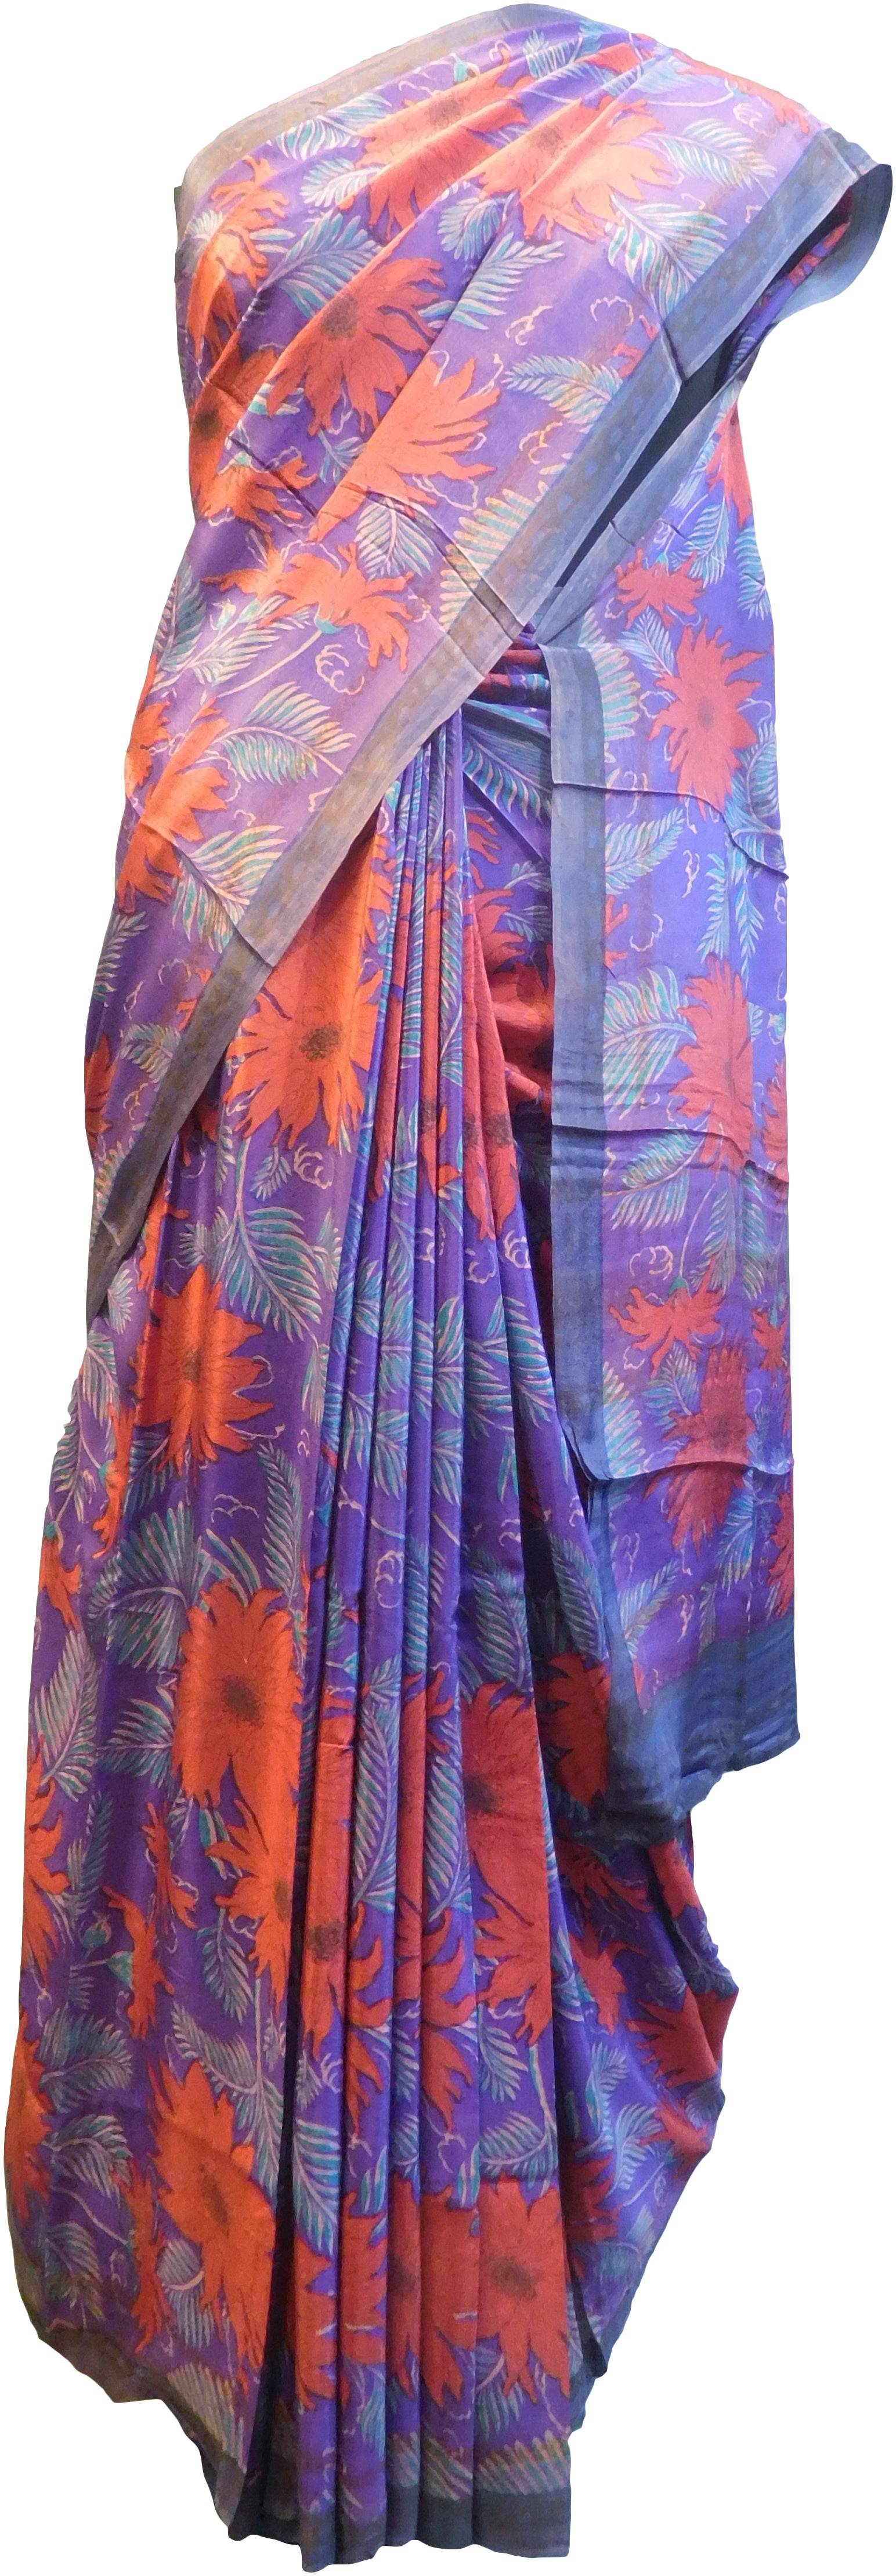 Multicolor Designer Wedding Partywear Pure Crepe Hand Brush Reprinted Kolkata Saree Sari With Blouse Piece  RP271